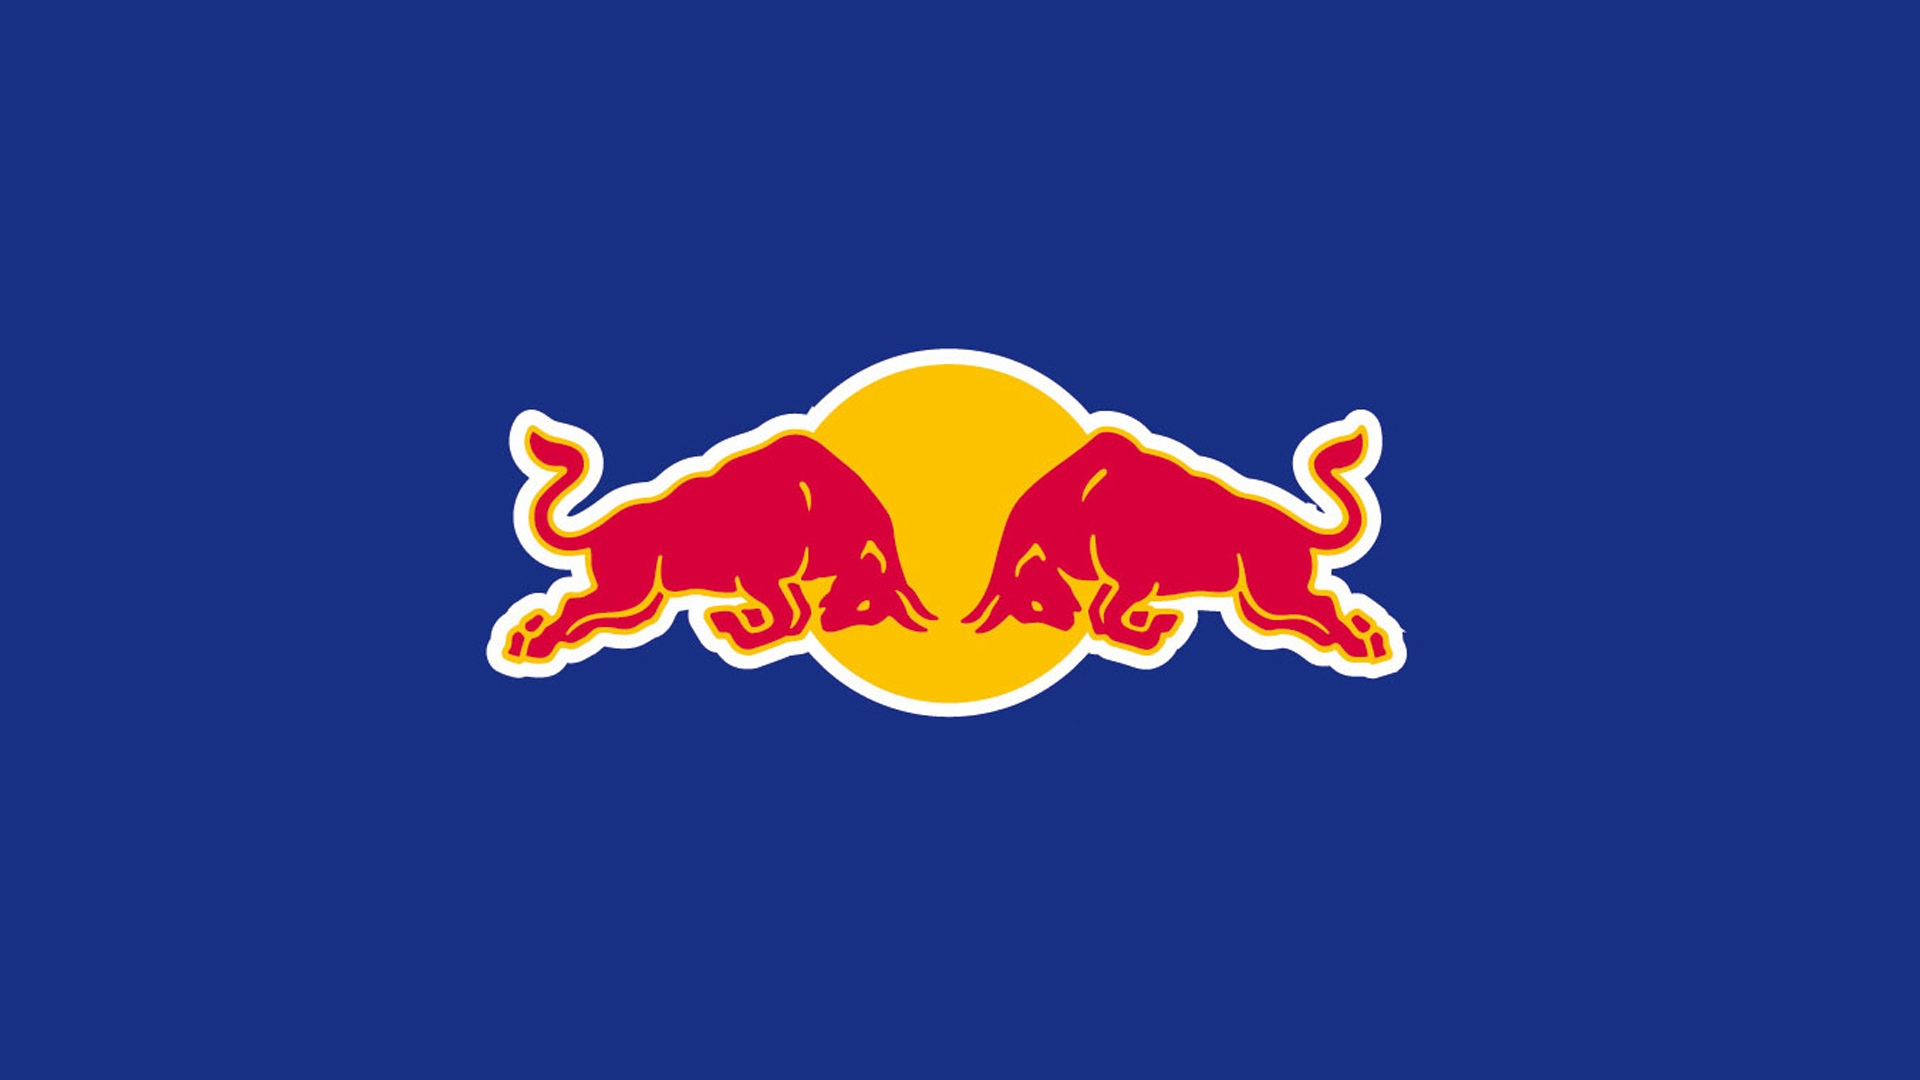 Top f1 wallpapers